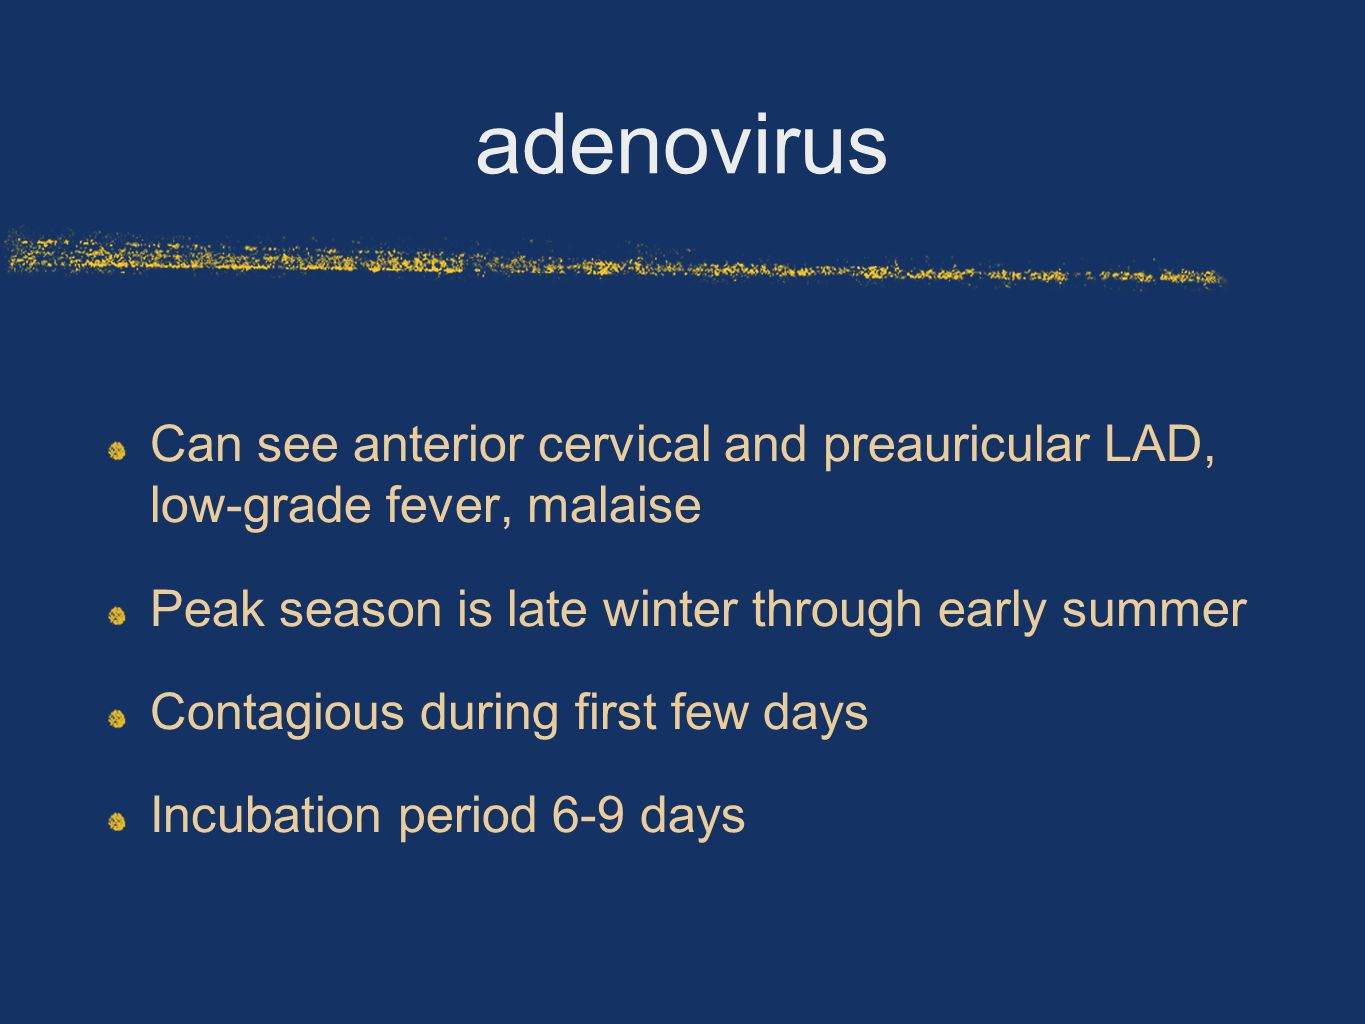 adenovirus Can see anterior cervical and preauricular LAD, low-grade fever, malaise. Peak season is late winter through early summer.